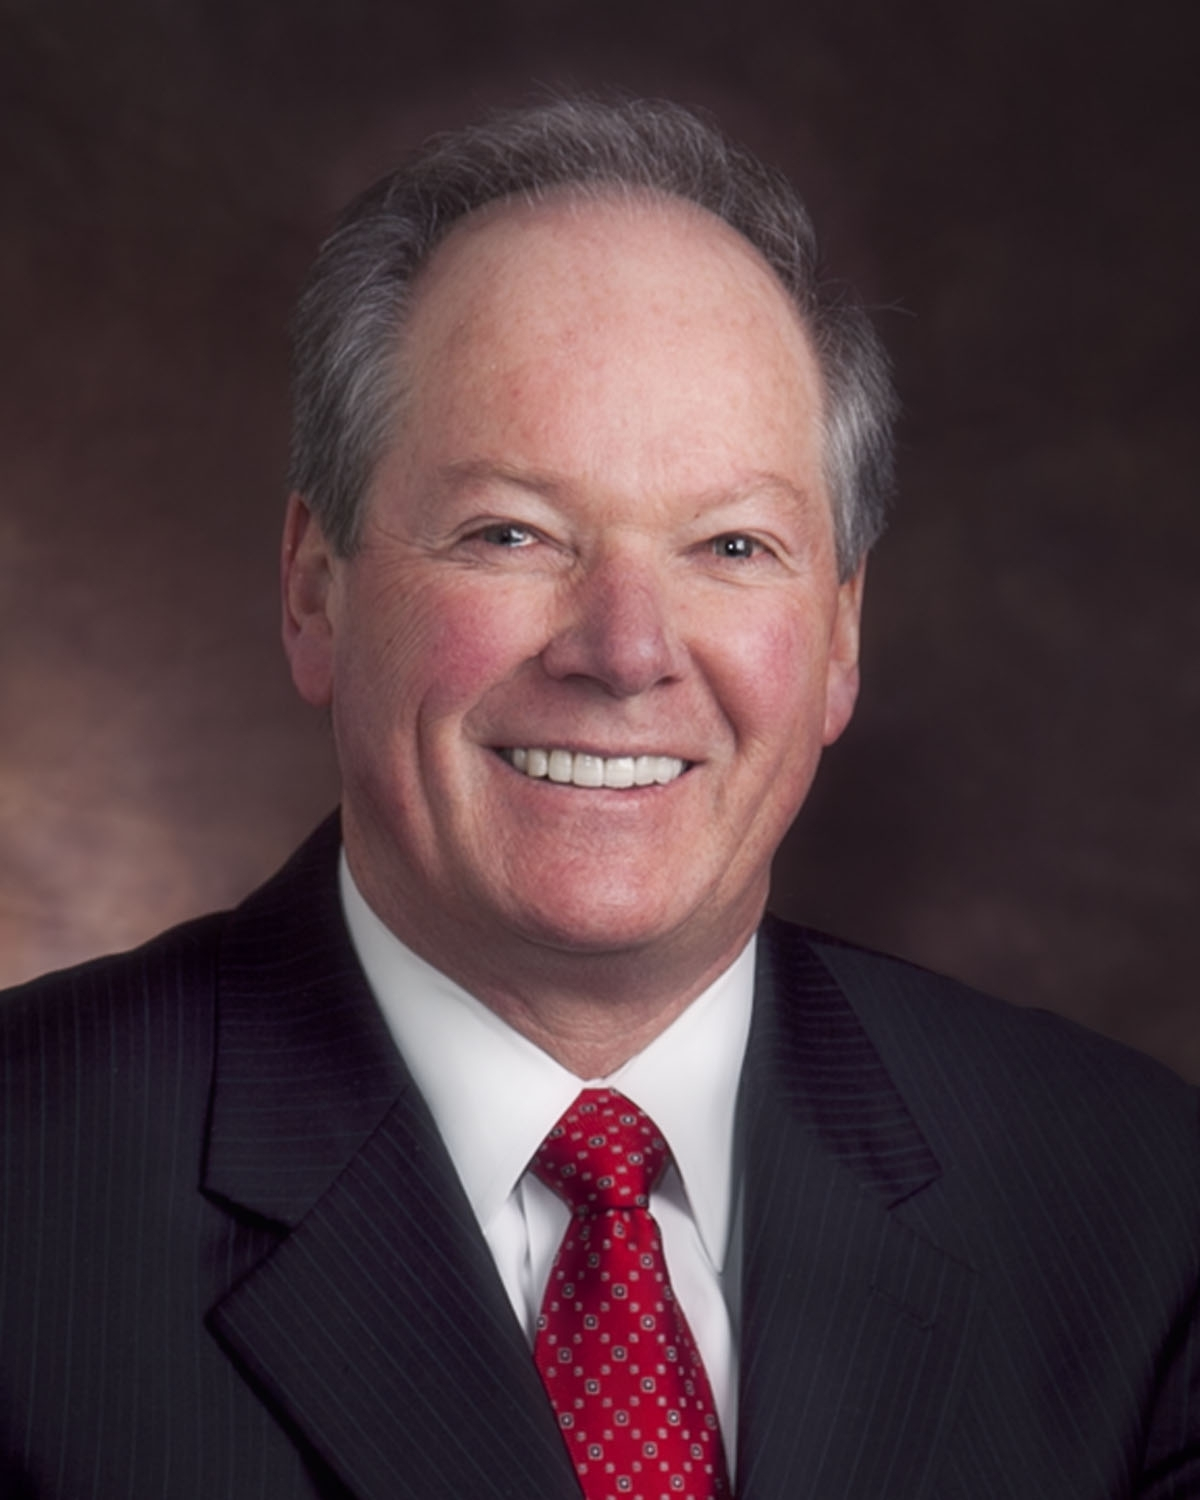 Ronald W. Jibson was elected as a new director for a term that expires in 2017. (Photo: Business Wire)